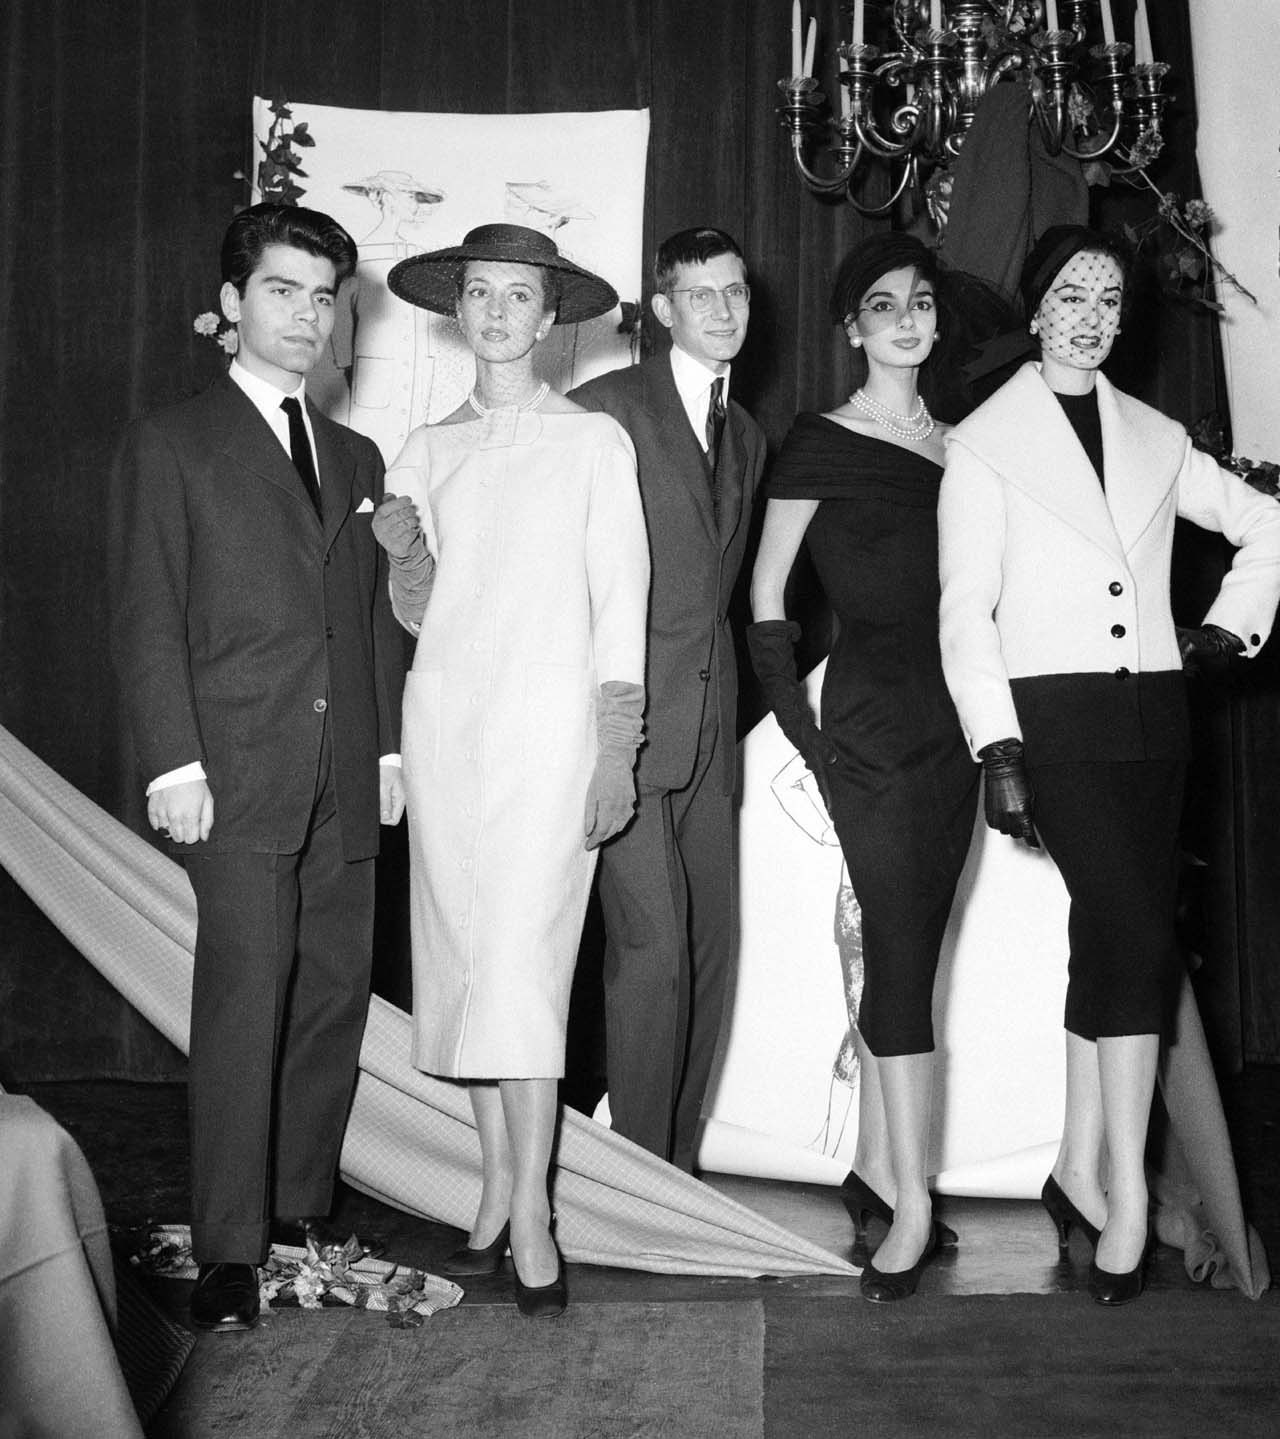 The Woolmark Prize Winners, 1954. Karl Lagerfeld and Yves Saint Laurent.